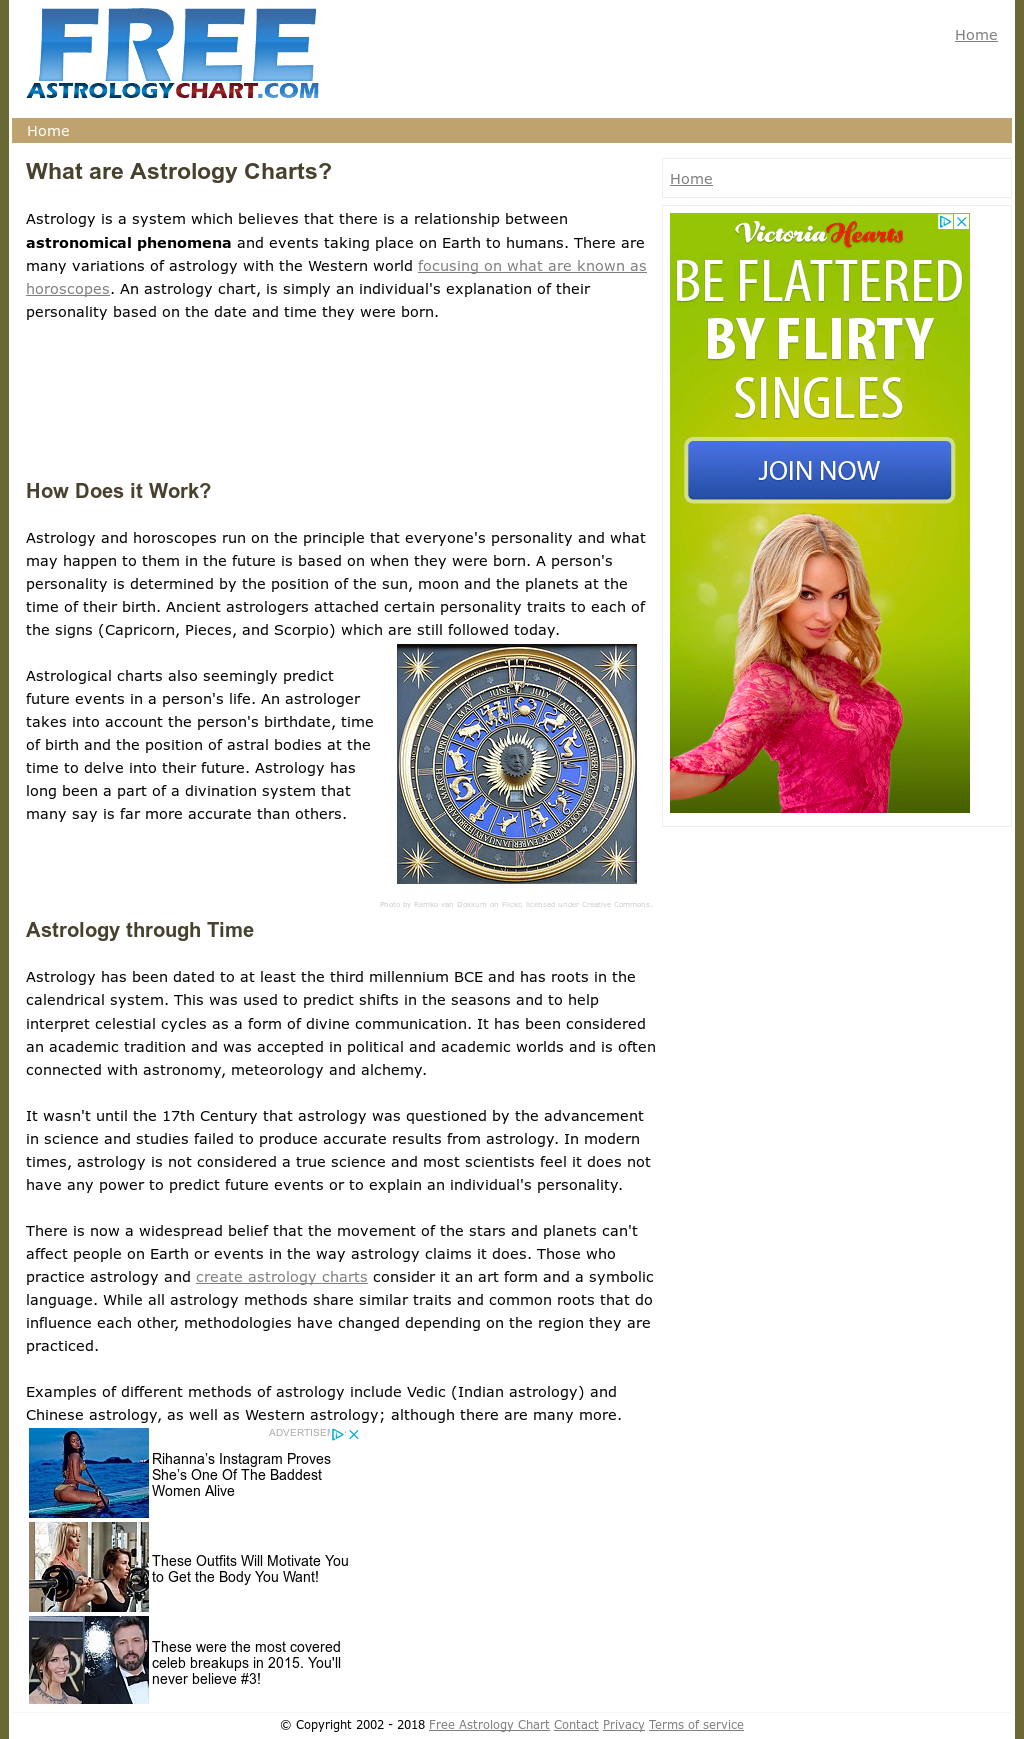 Free Astrology Chart Competitors, Revenue and Employees